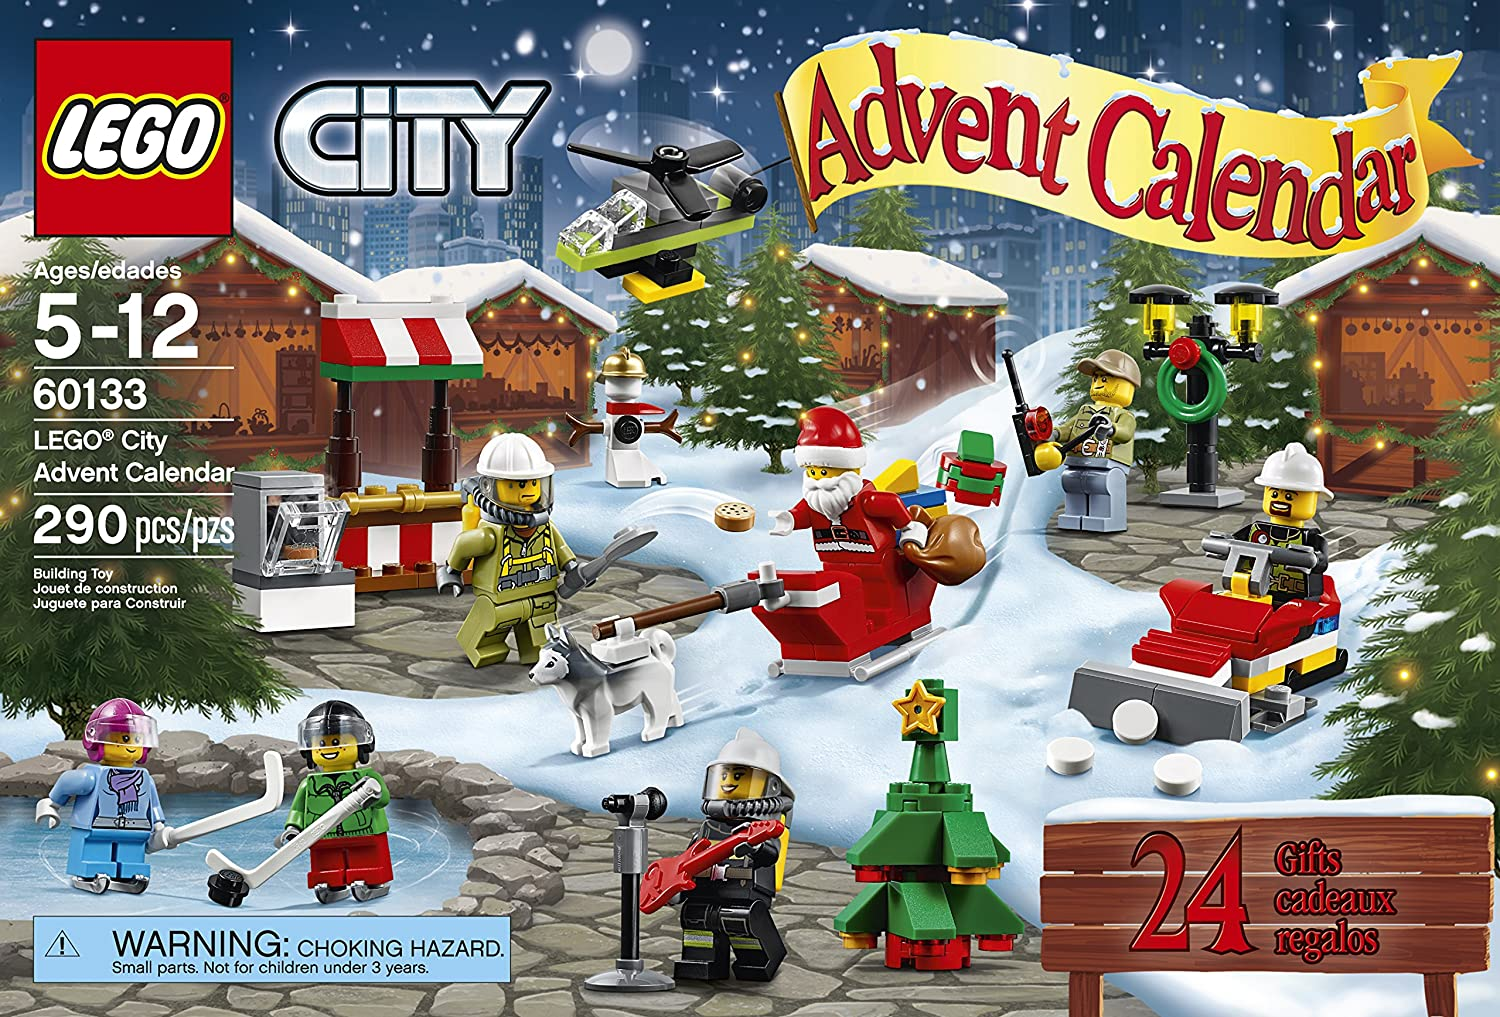 LEGO City Town 60133 Advent Calendar Building Kit 290 Piece Discontinued by Manufacturer 6137211